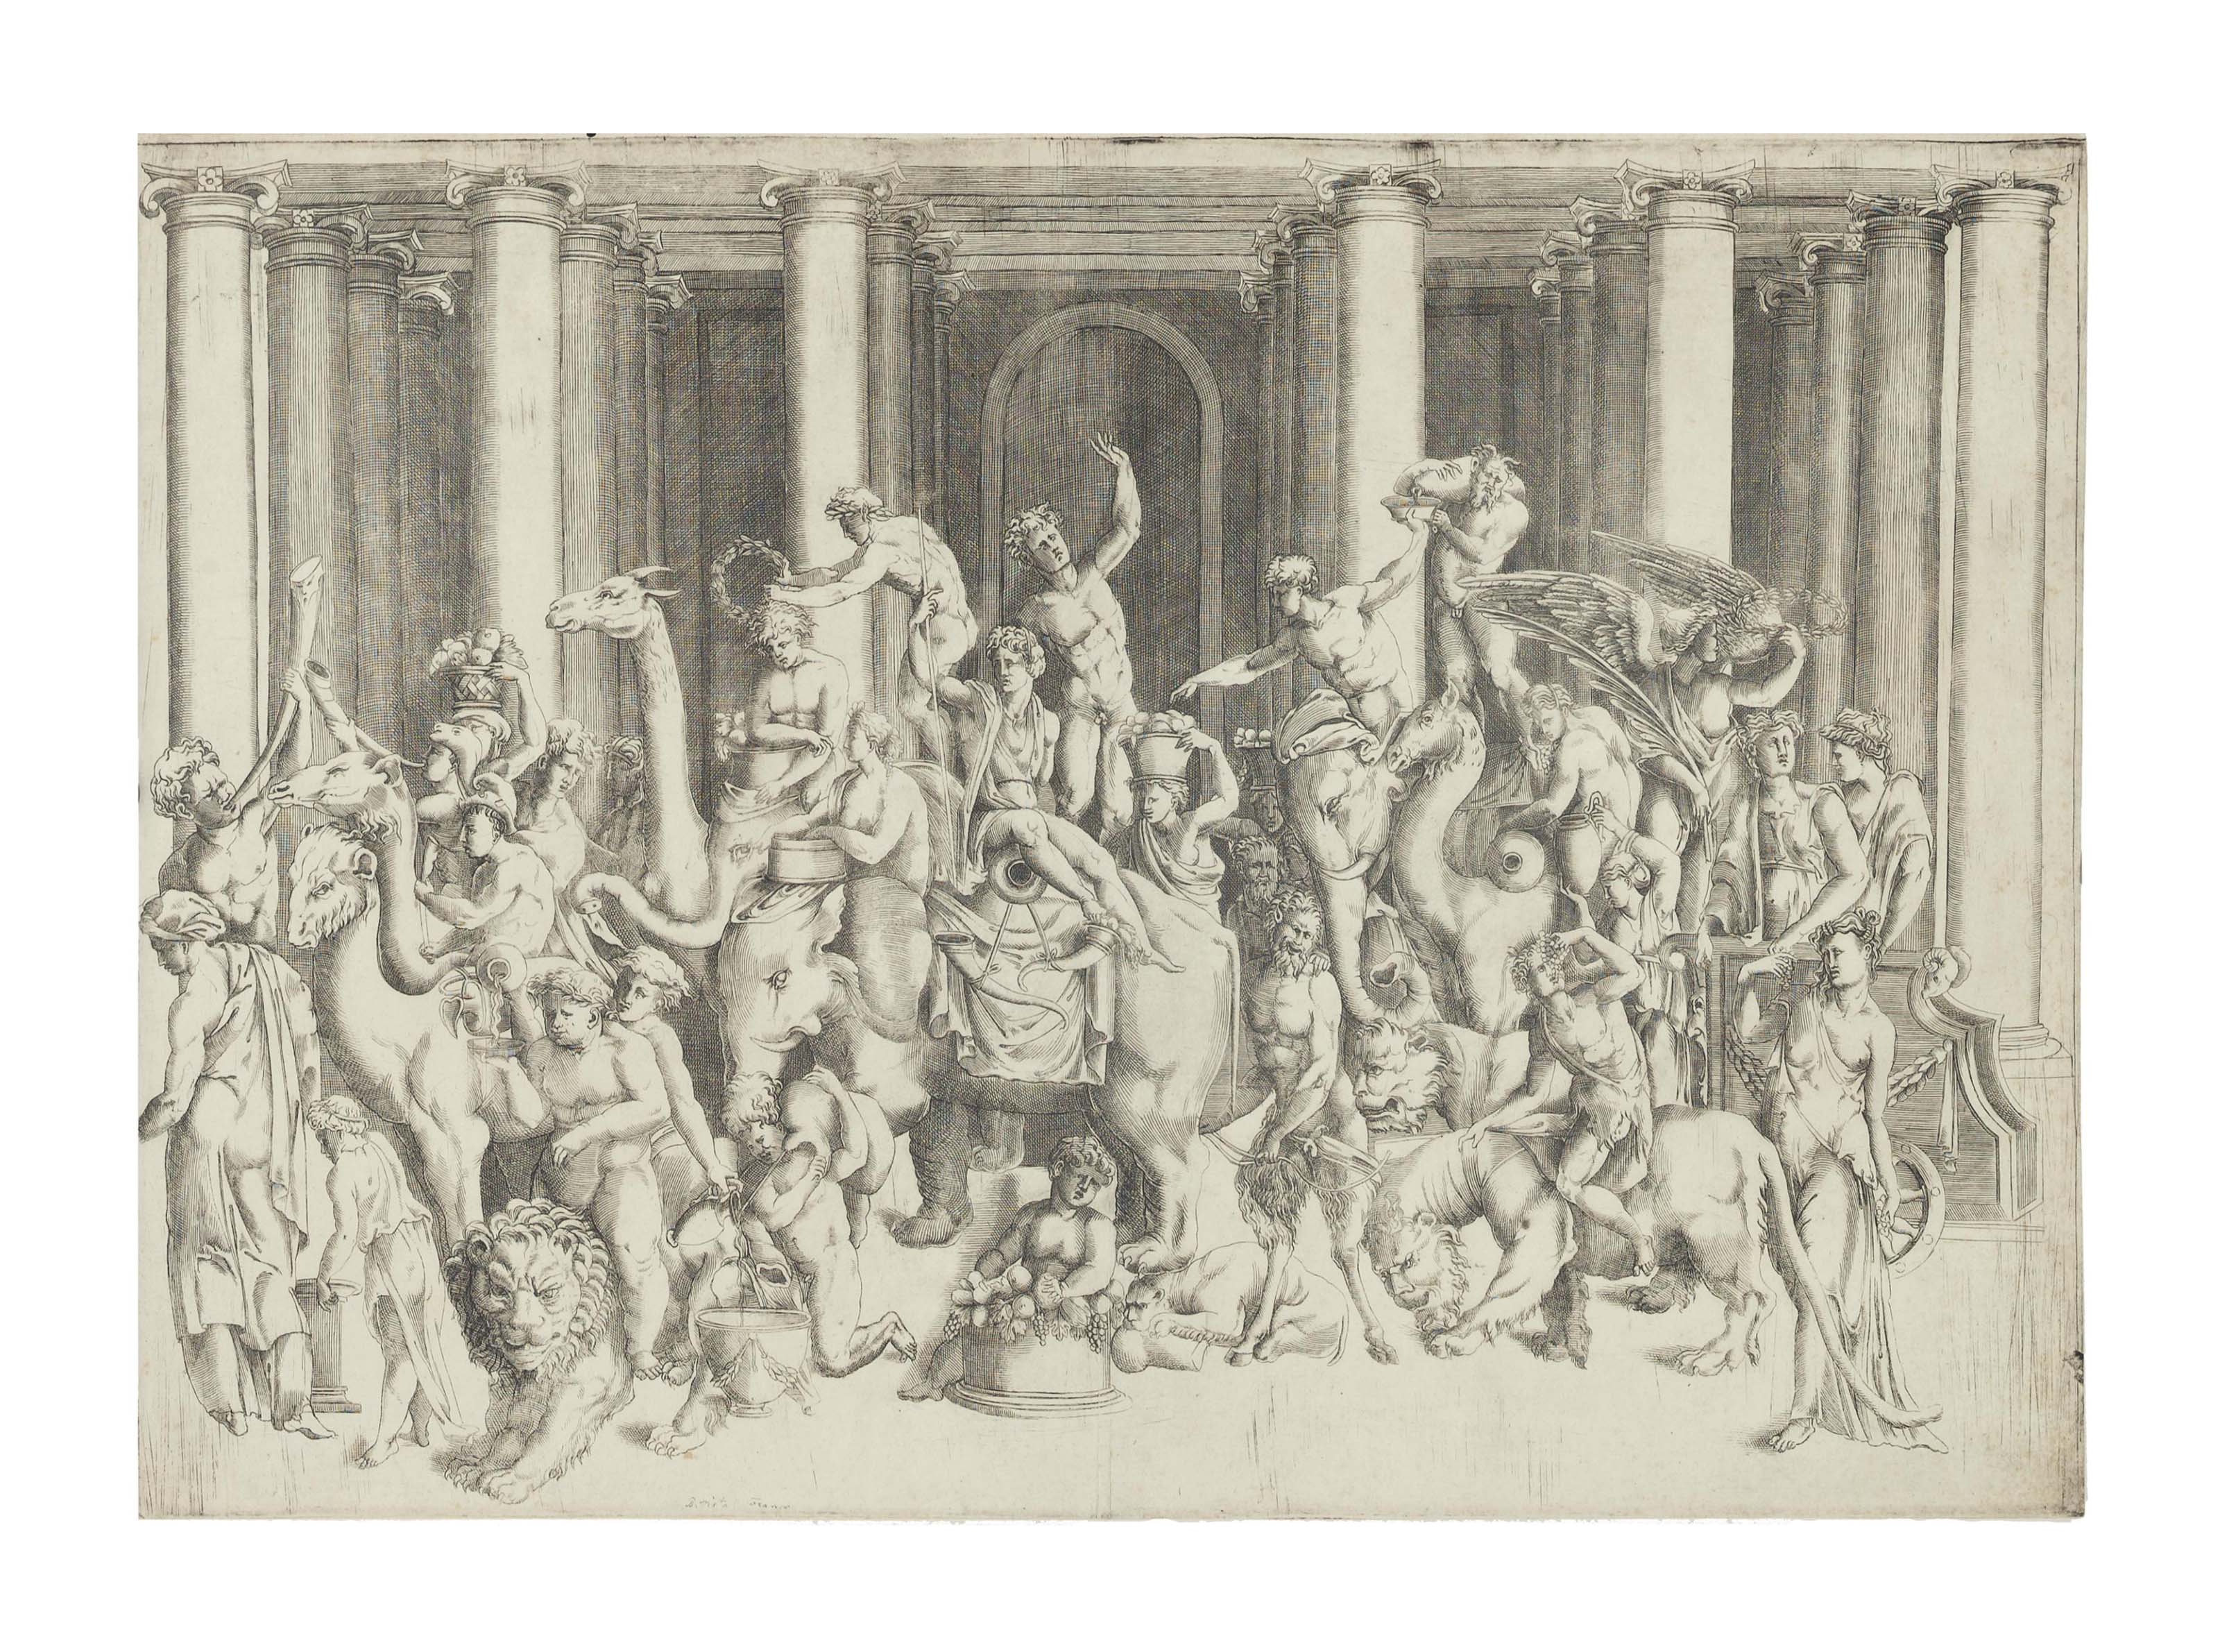 Bacchus and Ariadne on a Triumphal Chariot (Bartsch 32)